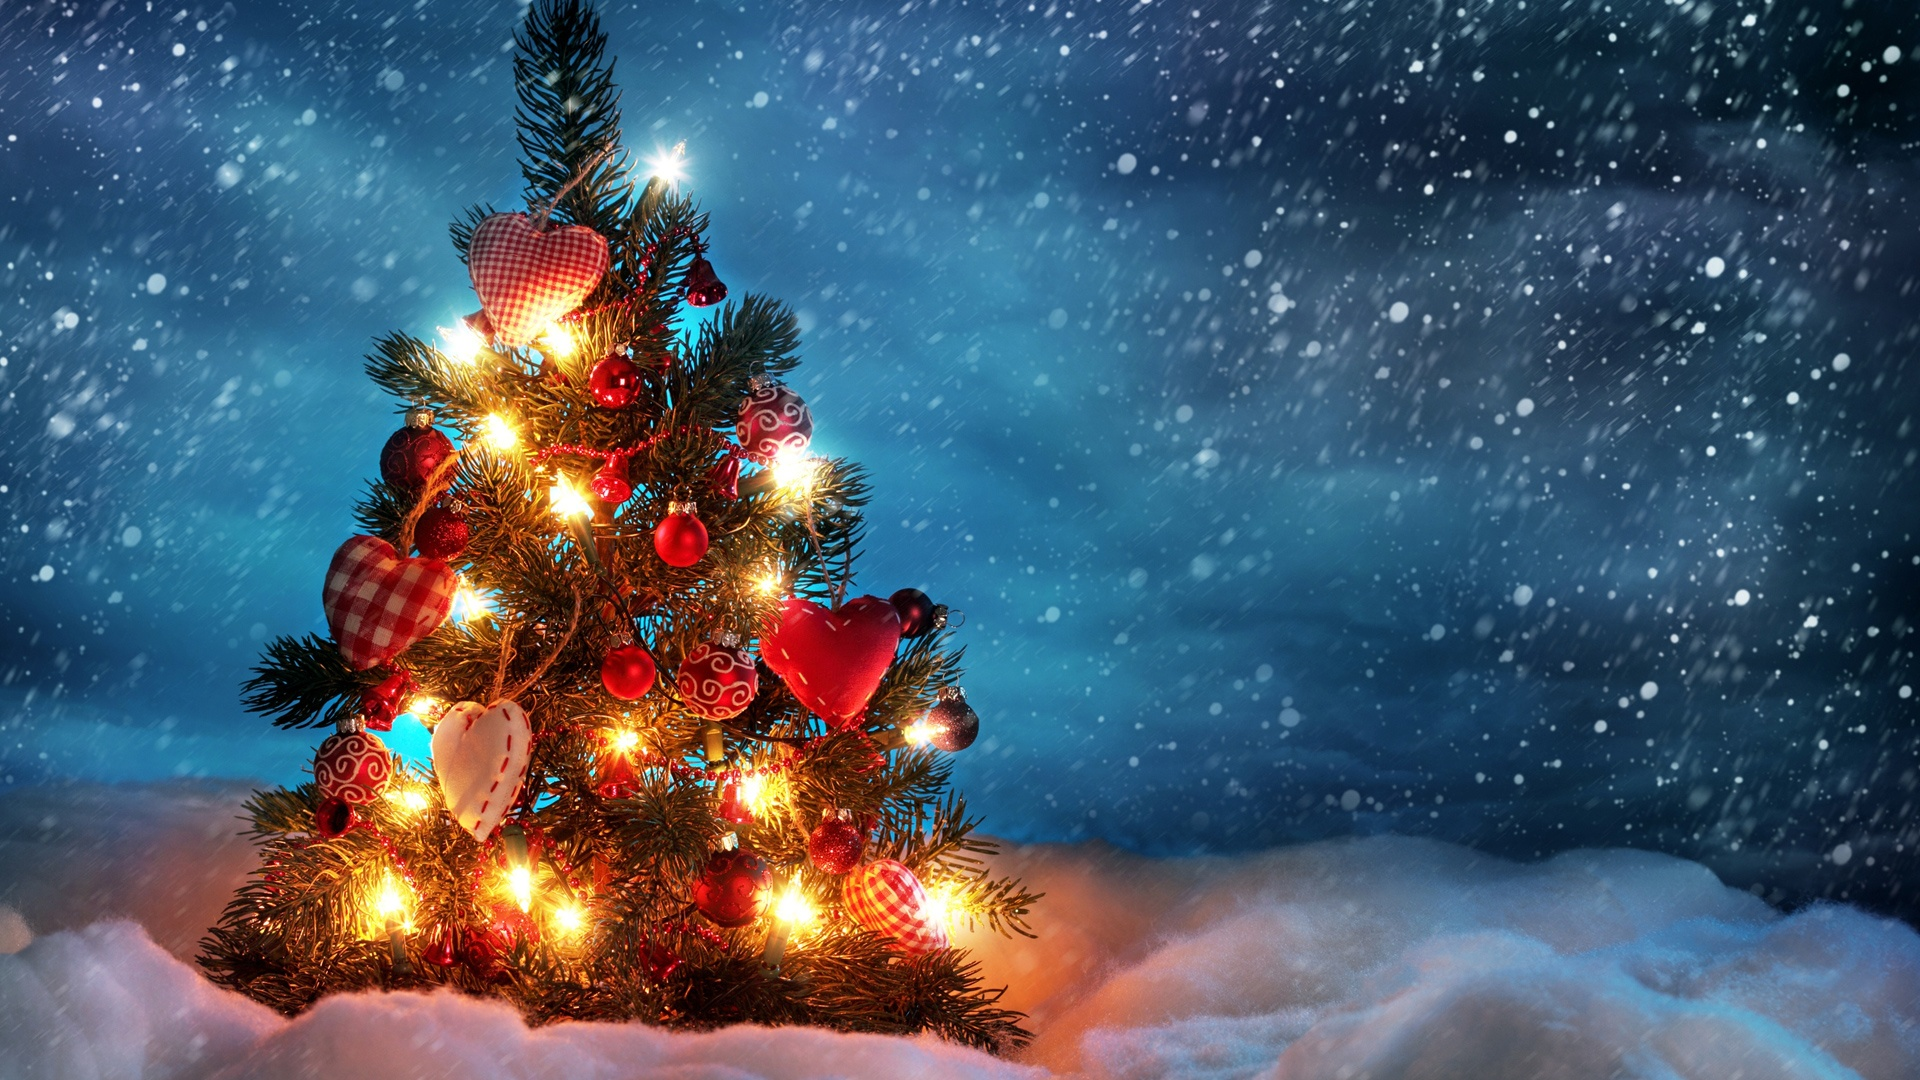 1000+ images about christmas on Pinterest | Christmas trees, Merry